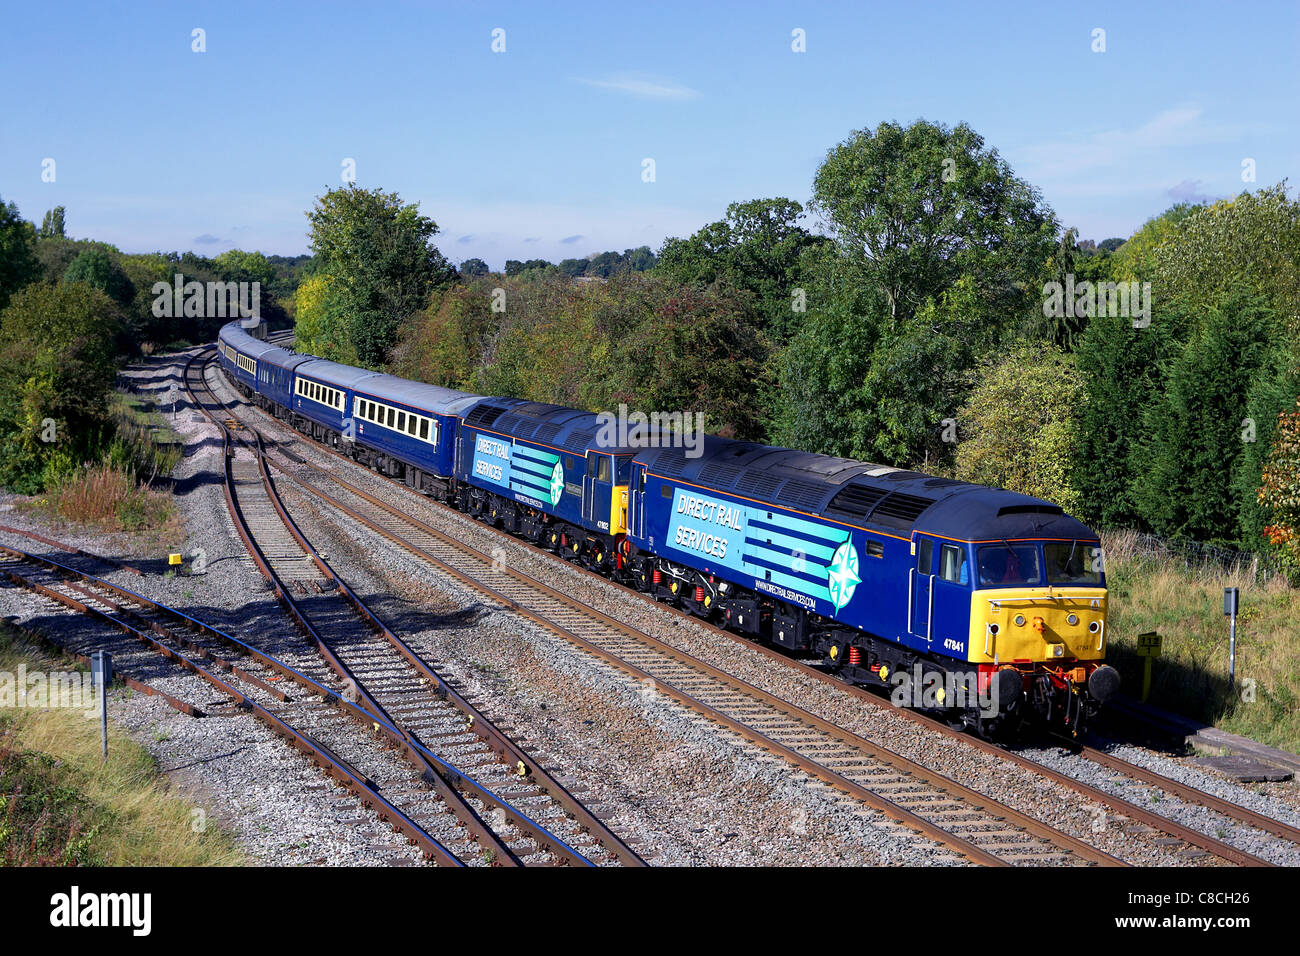 drs boat train, cruise saver express at hatton warwick - Stock Image